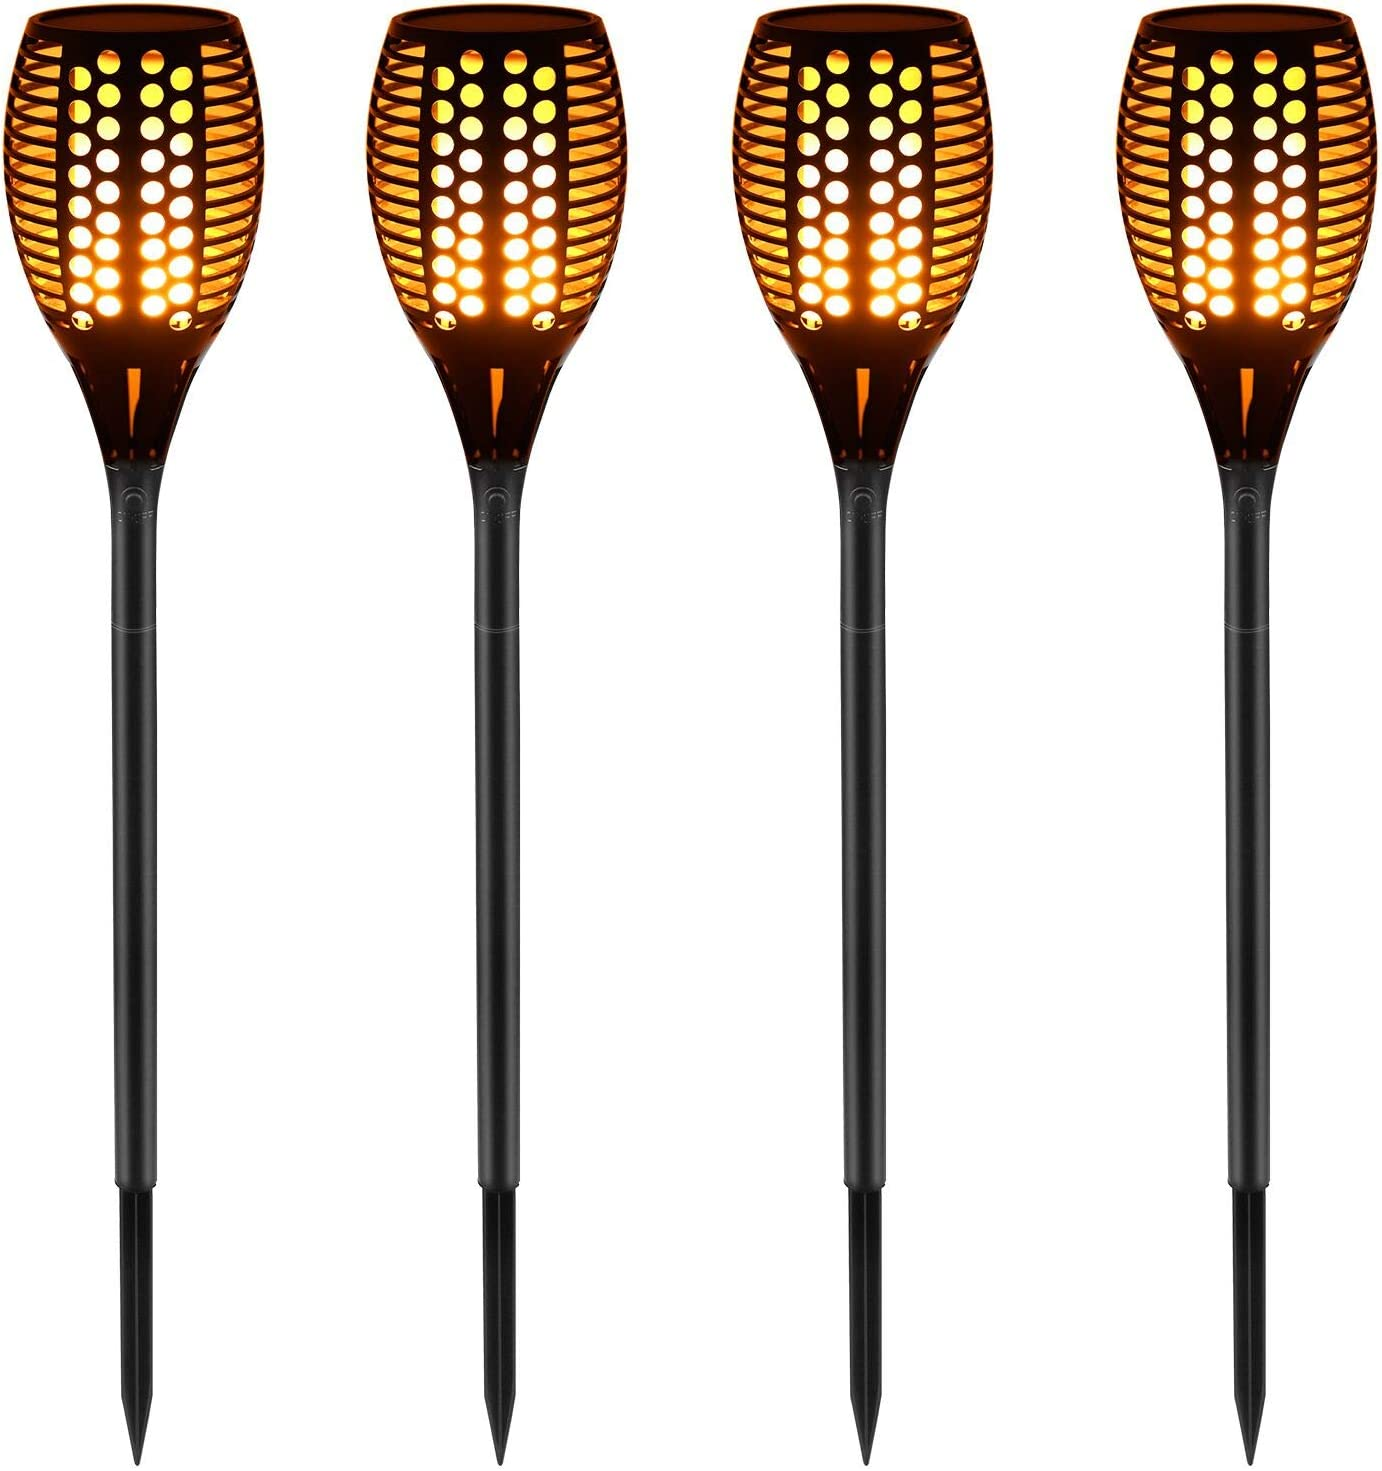 Flickering Flames Torch Solar Path Light Dancing Flame Lighting 96 LED Dusk To Dawn Flickering YEED Torches Outdoor Waterproof Garden 4 Pack Solar Lights Outdoor